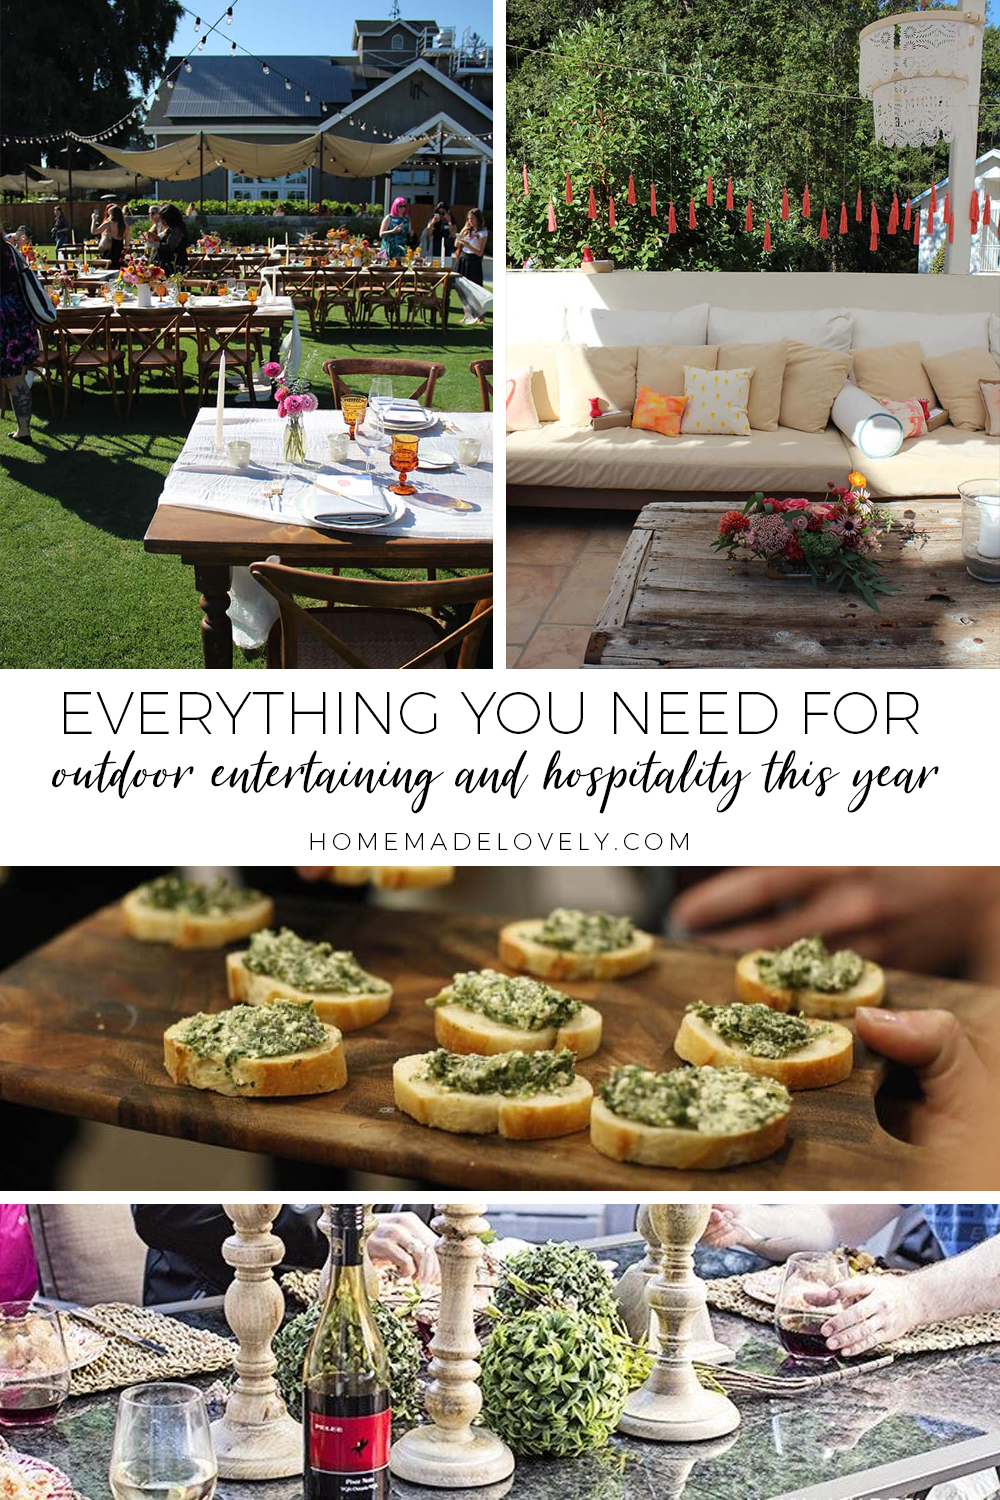 everything you need for outdoor entertaining and hospitality text overlay with various images of outdoor party setups